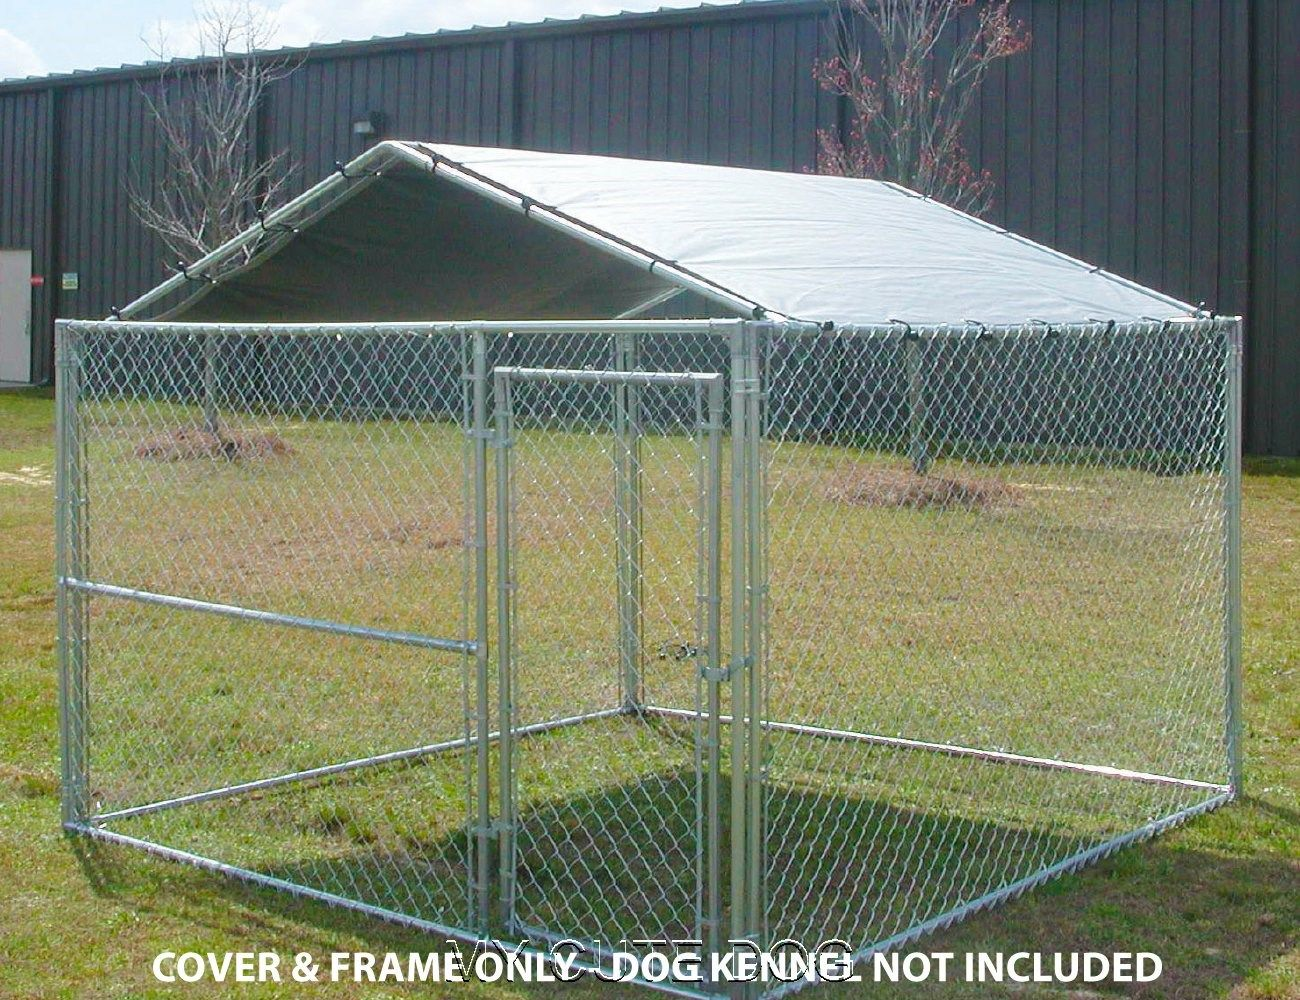 Pin By Boyds Bengals On Cat Enclosures Dog Kennel Outdoor Luxury Dog Kennels Dog Kennel